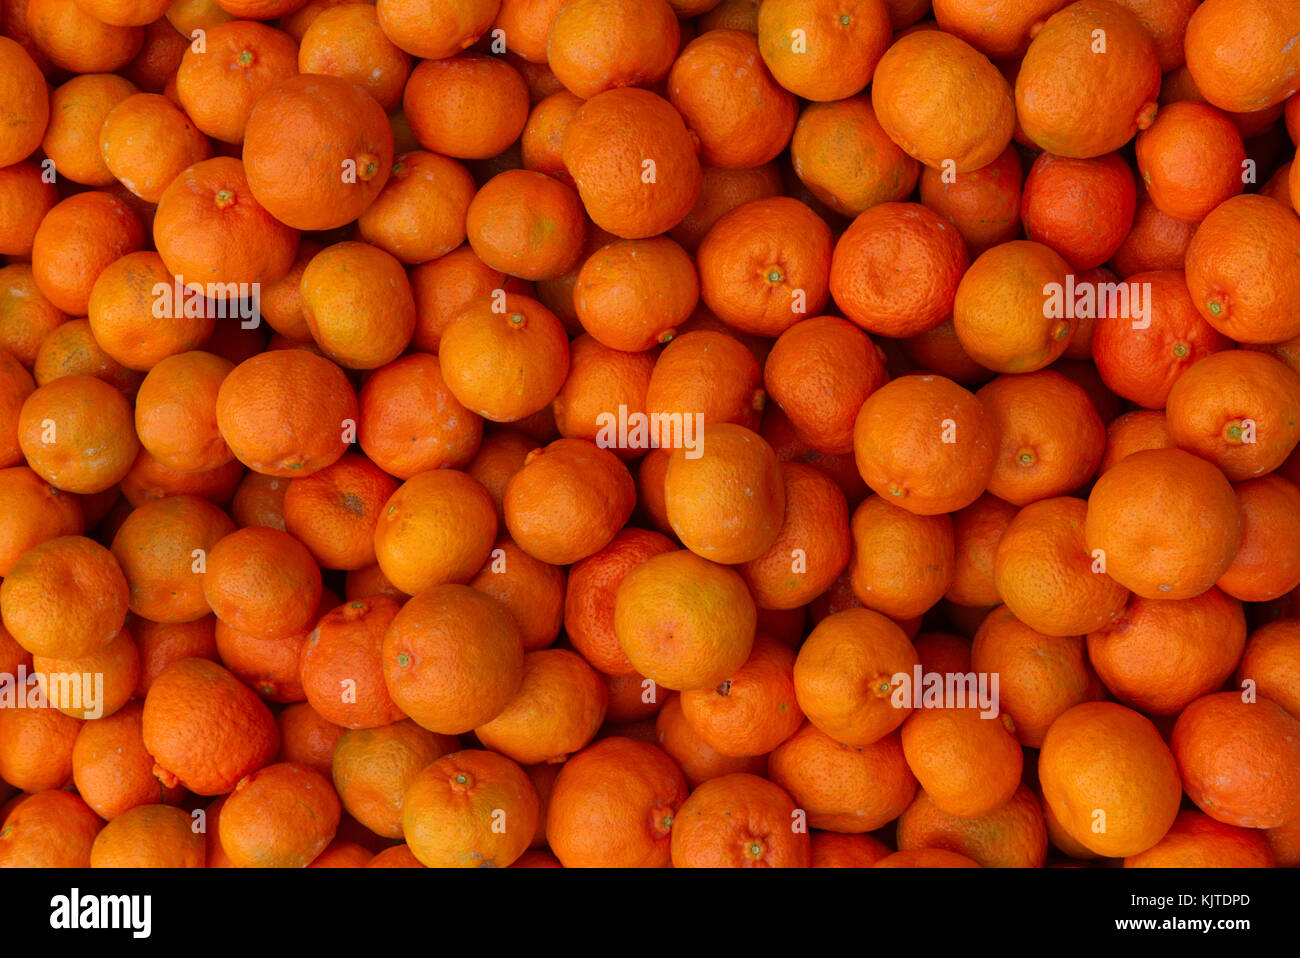 Fruit Bins For Sale Bin Citrus Stock Photos And Bin Citrus Stock Images Alamy